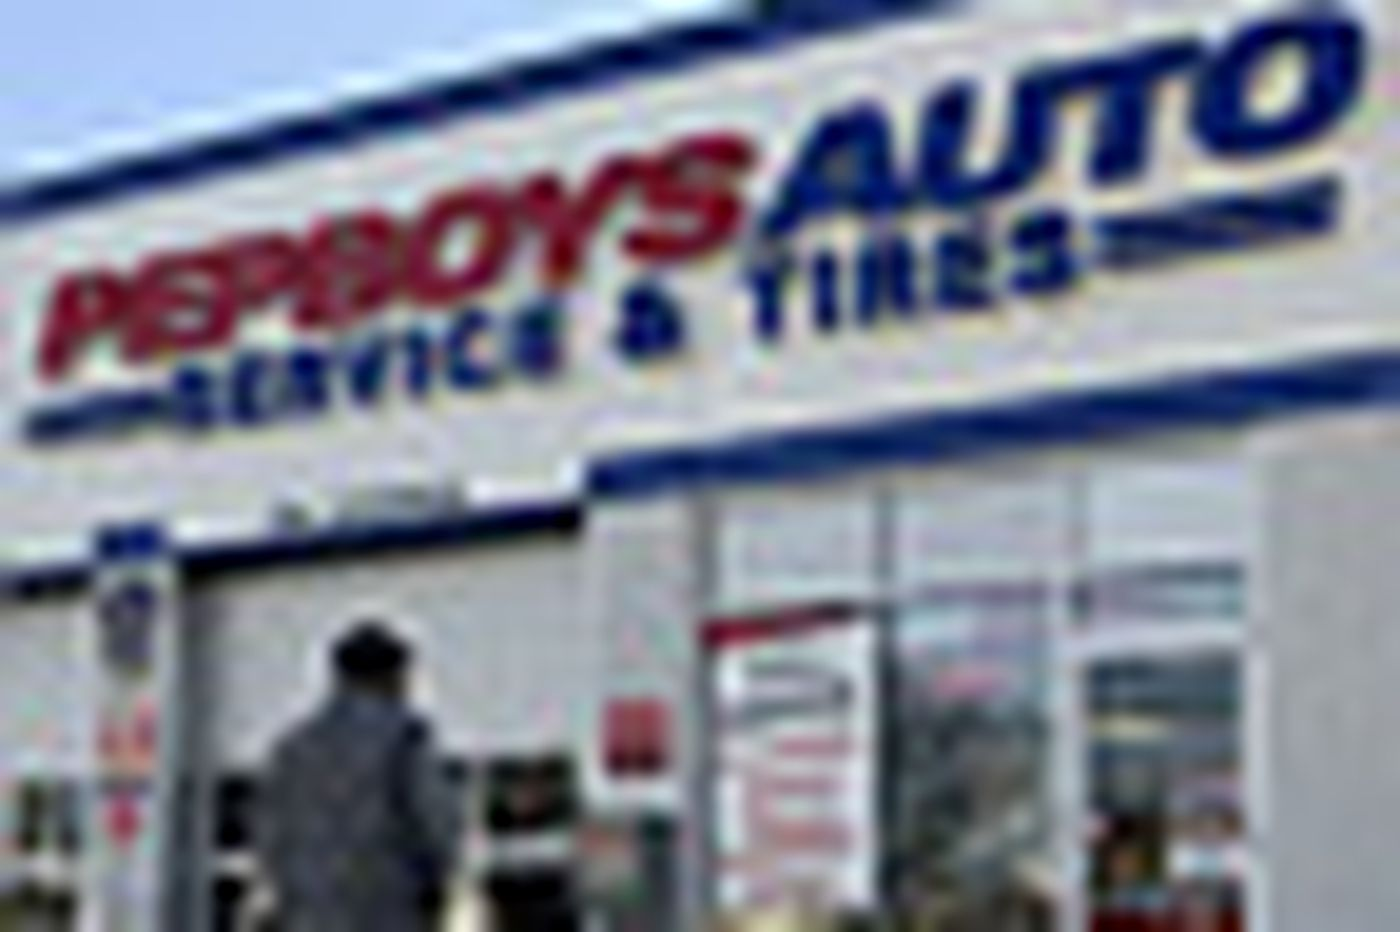 Philly Deals: Break-up with Gores Group hurts Pep Boys